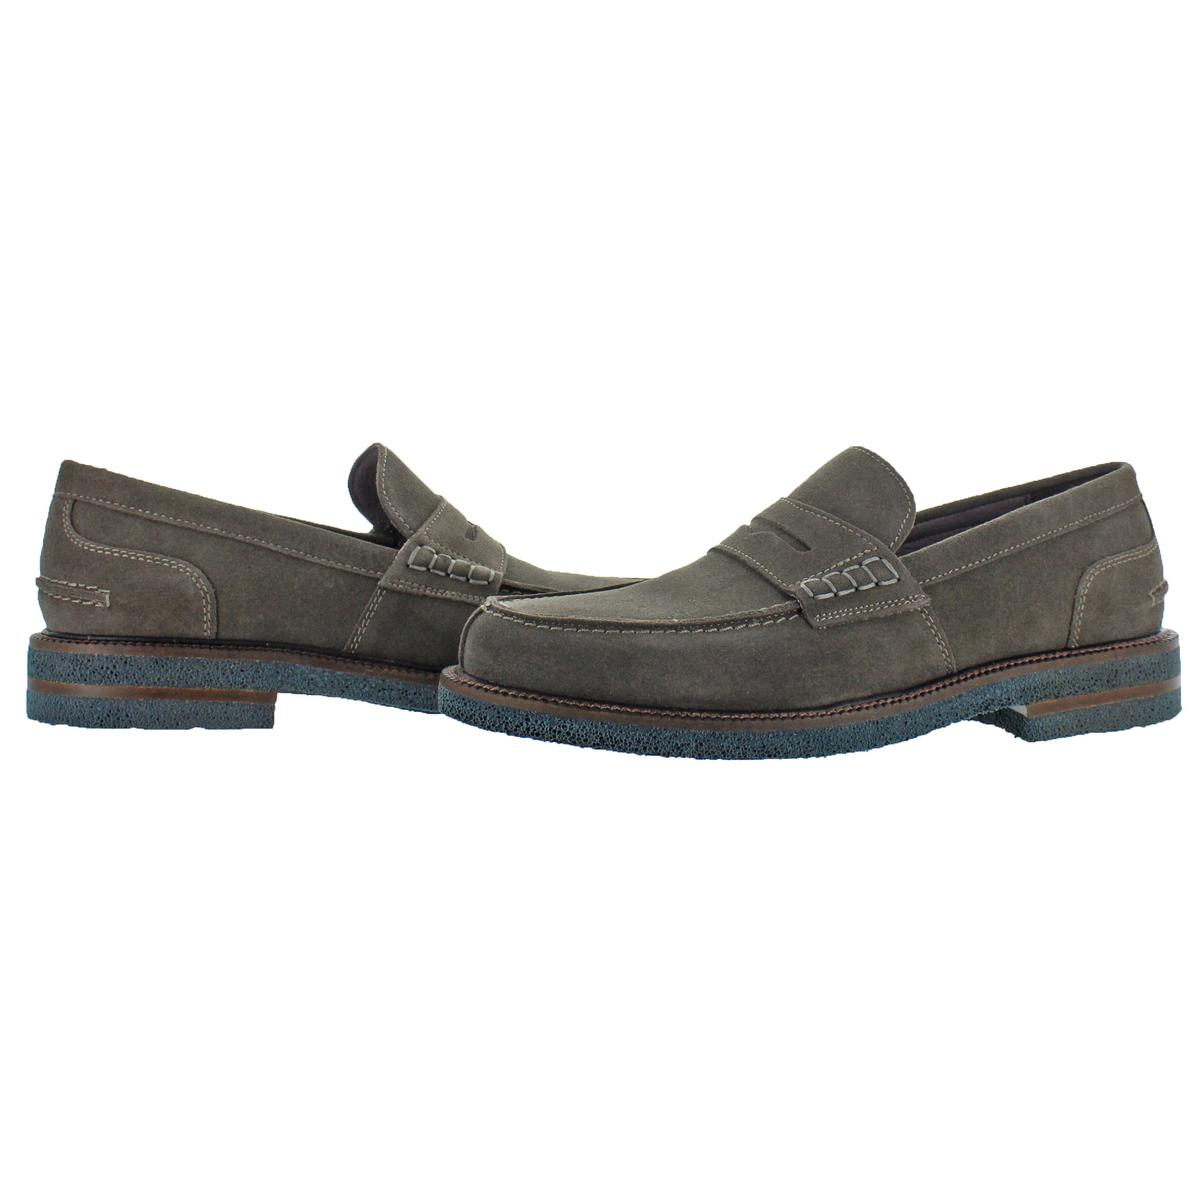 Donald-J-Pliner-Mens-Landry-Padded-Insole-Slip-On-Loafers-Shoes-BHFO-7720 thumbnail 5